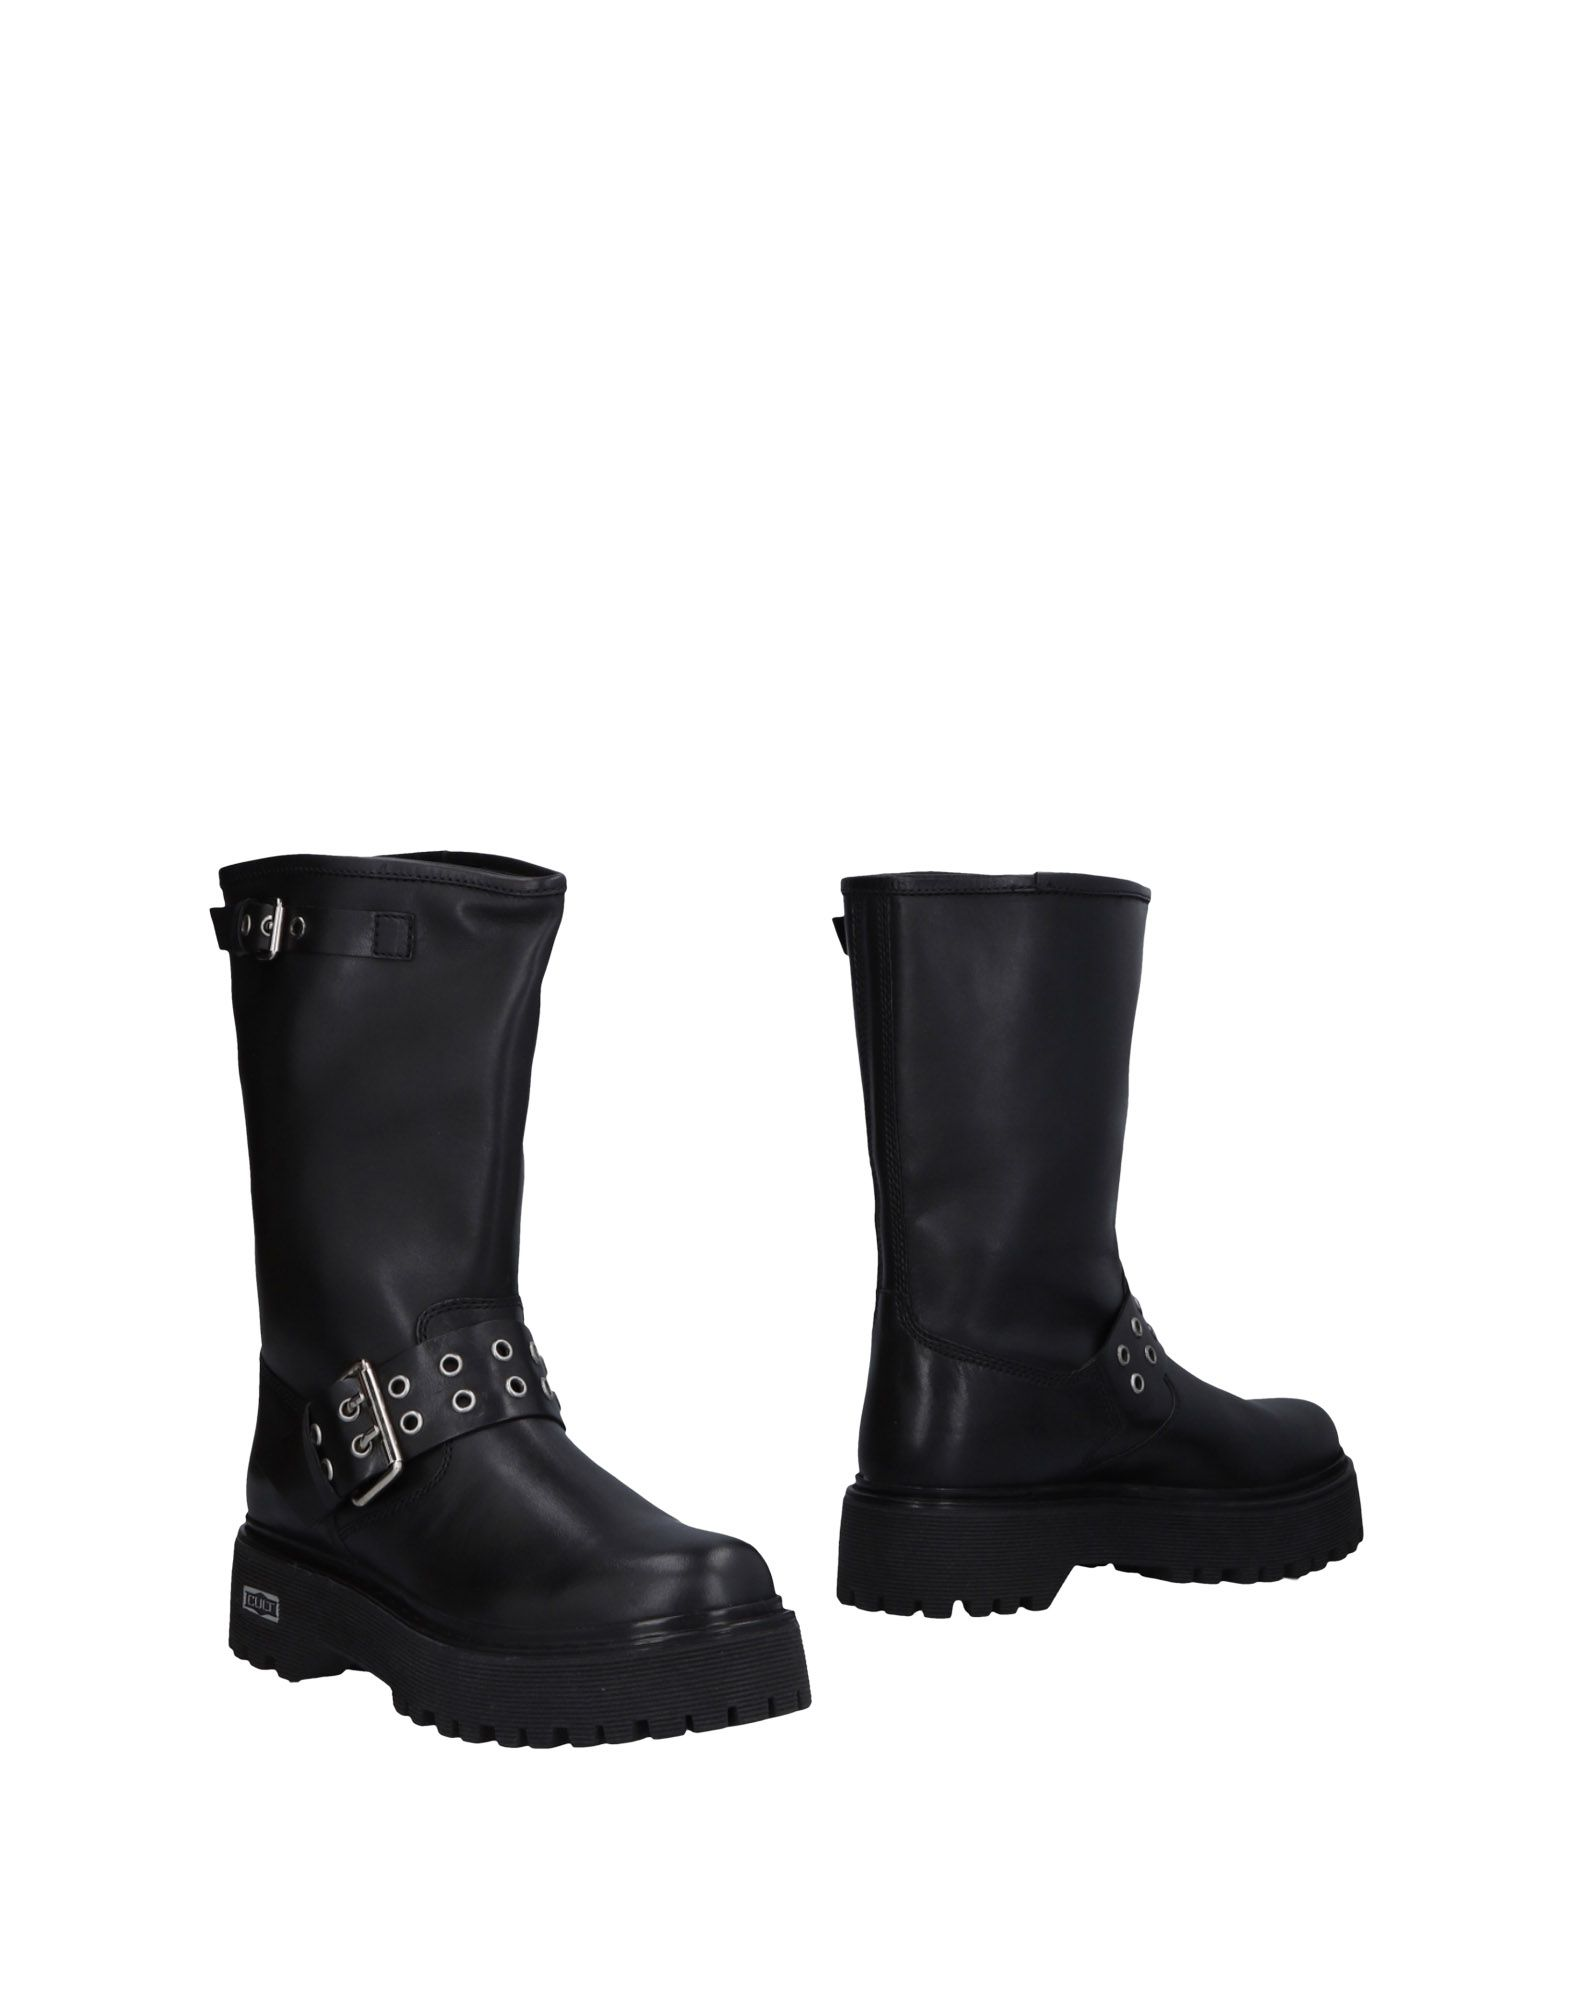 Cult Boots - on Women Cult Boots online on -  Australia - 11473871QH 497c54